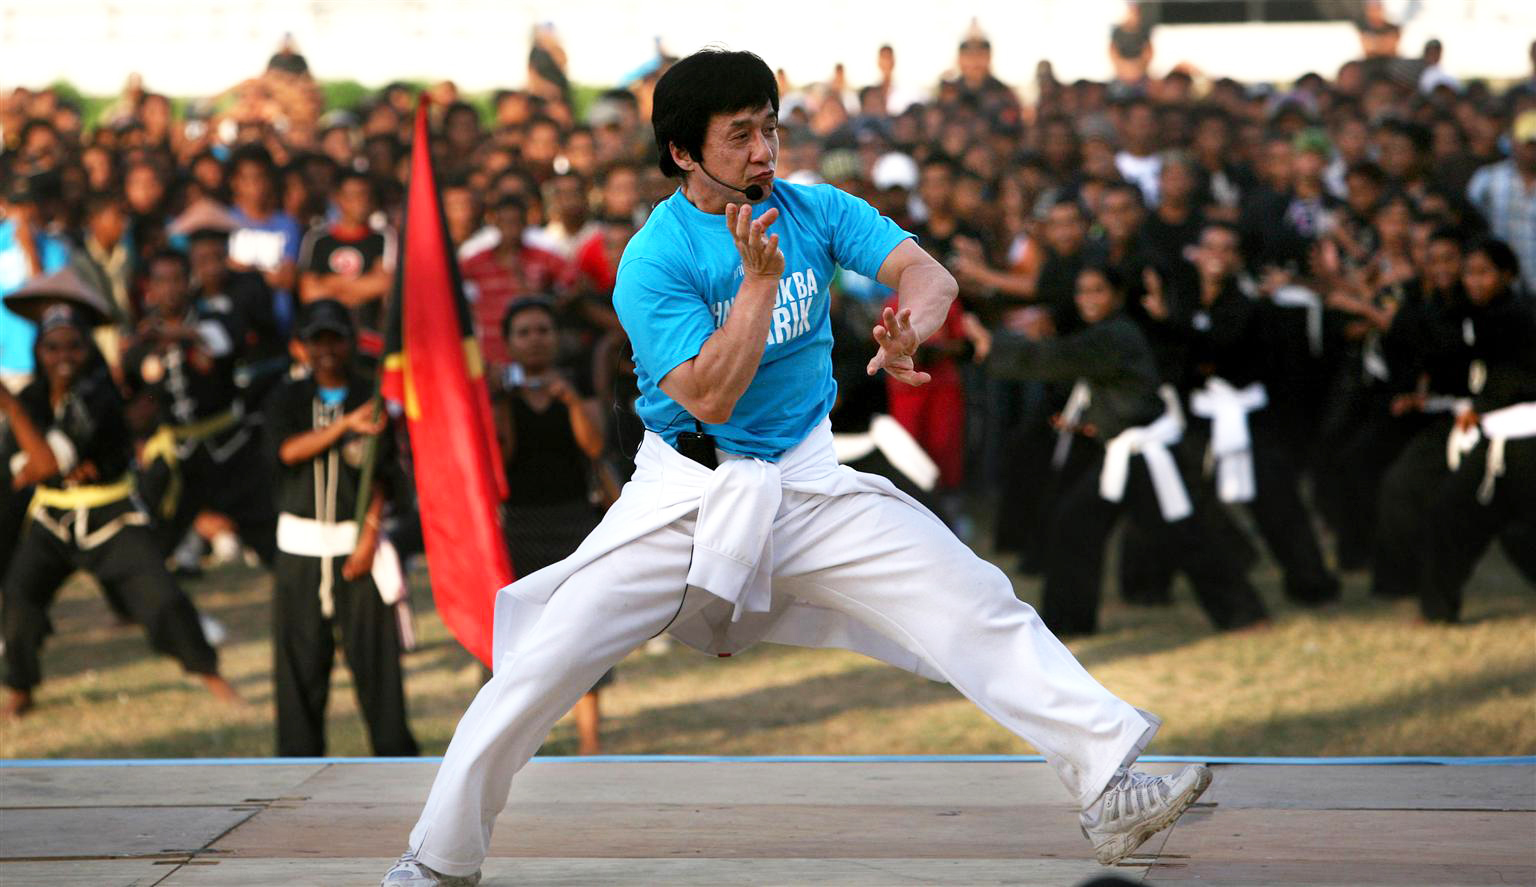 On 24 June, UNICEF Goodwill Ambassador Jackie Chan leads several hundred martial arts students in a martial arts exercise, at the national stadium in Dili, the capital. He wears a T-shirt that bears the UNICEF logo.